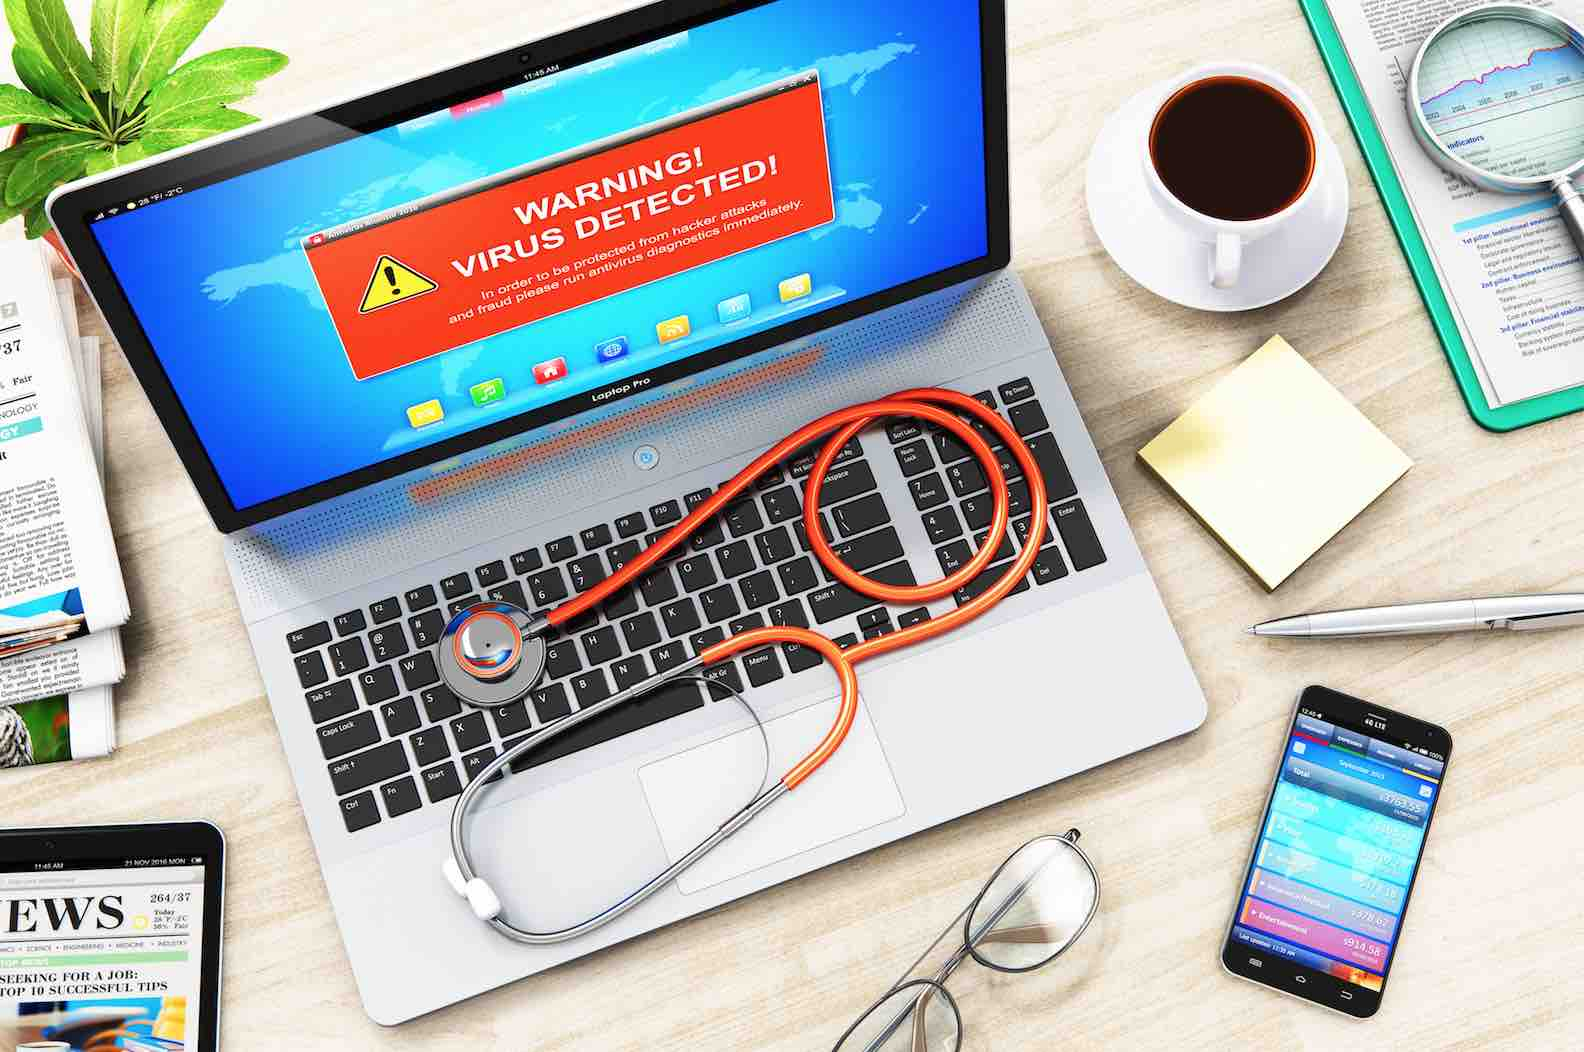 Things to Consider Before Selecting an Antivirus for Your PC or Mobile